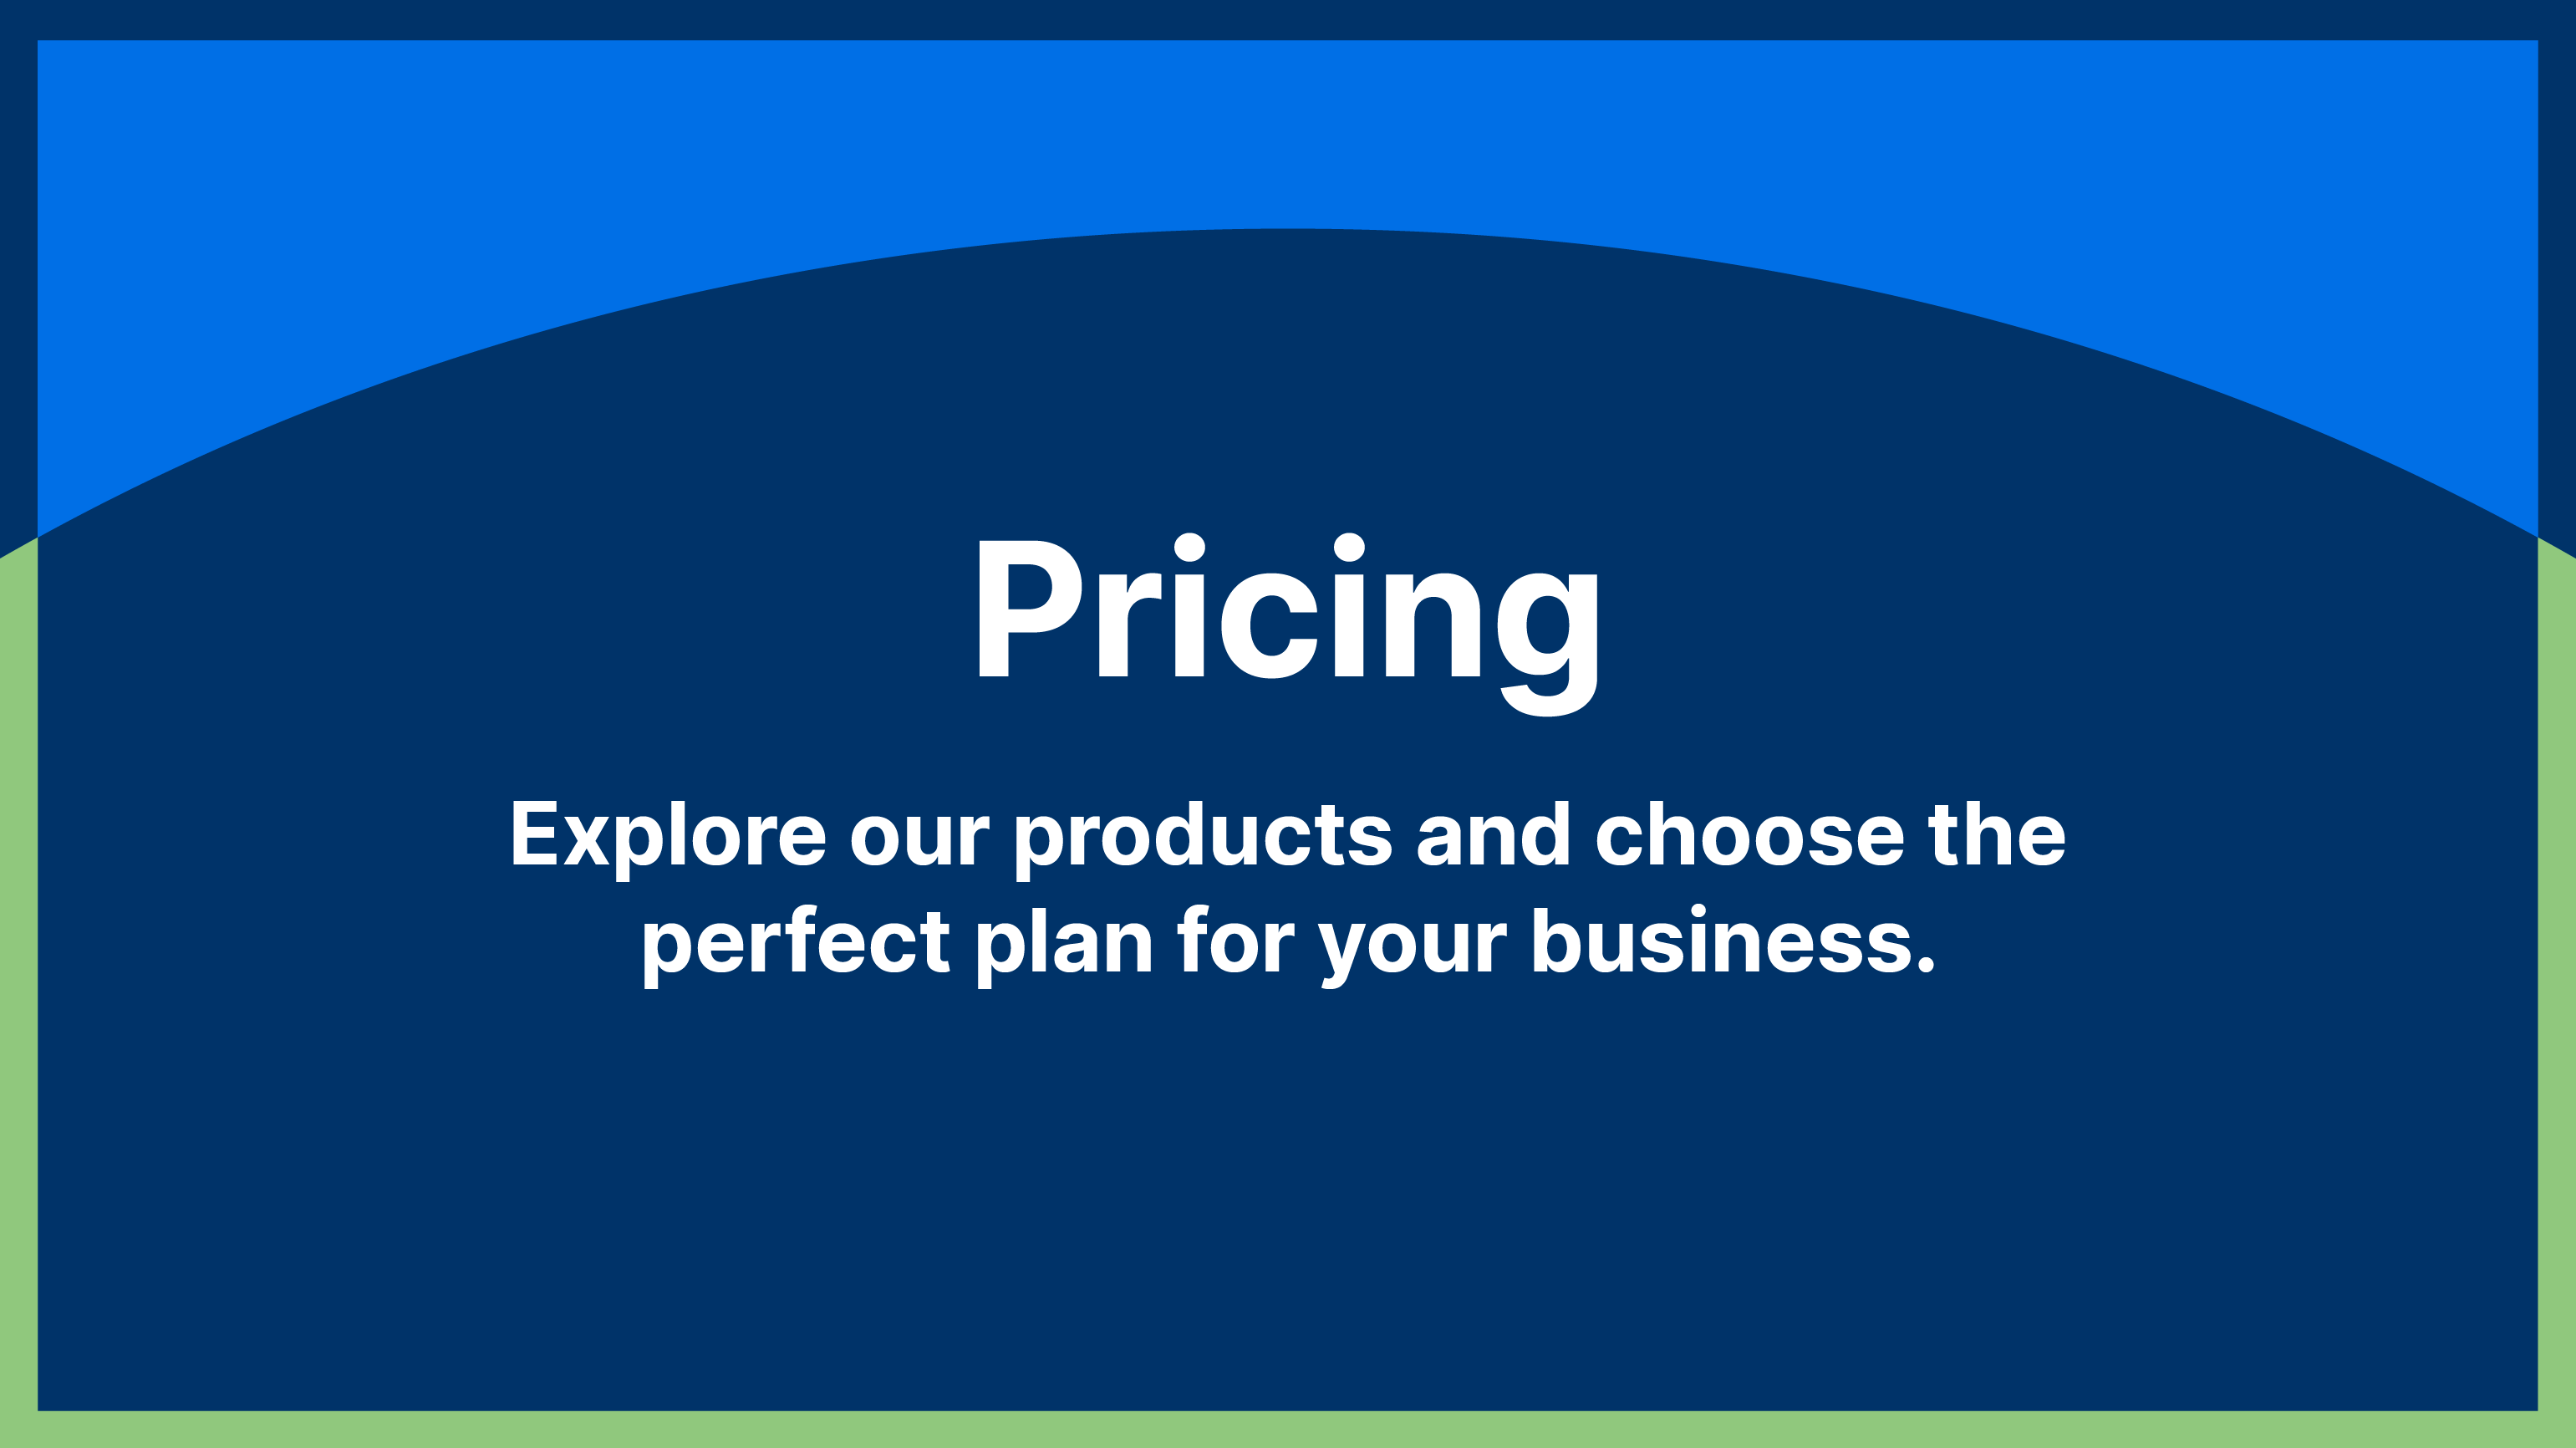 With our flexible pricing plan, you can explore the chatbot products and solution that suit your business best.